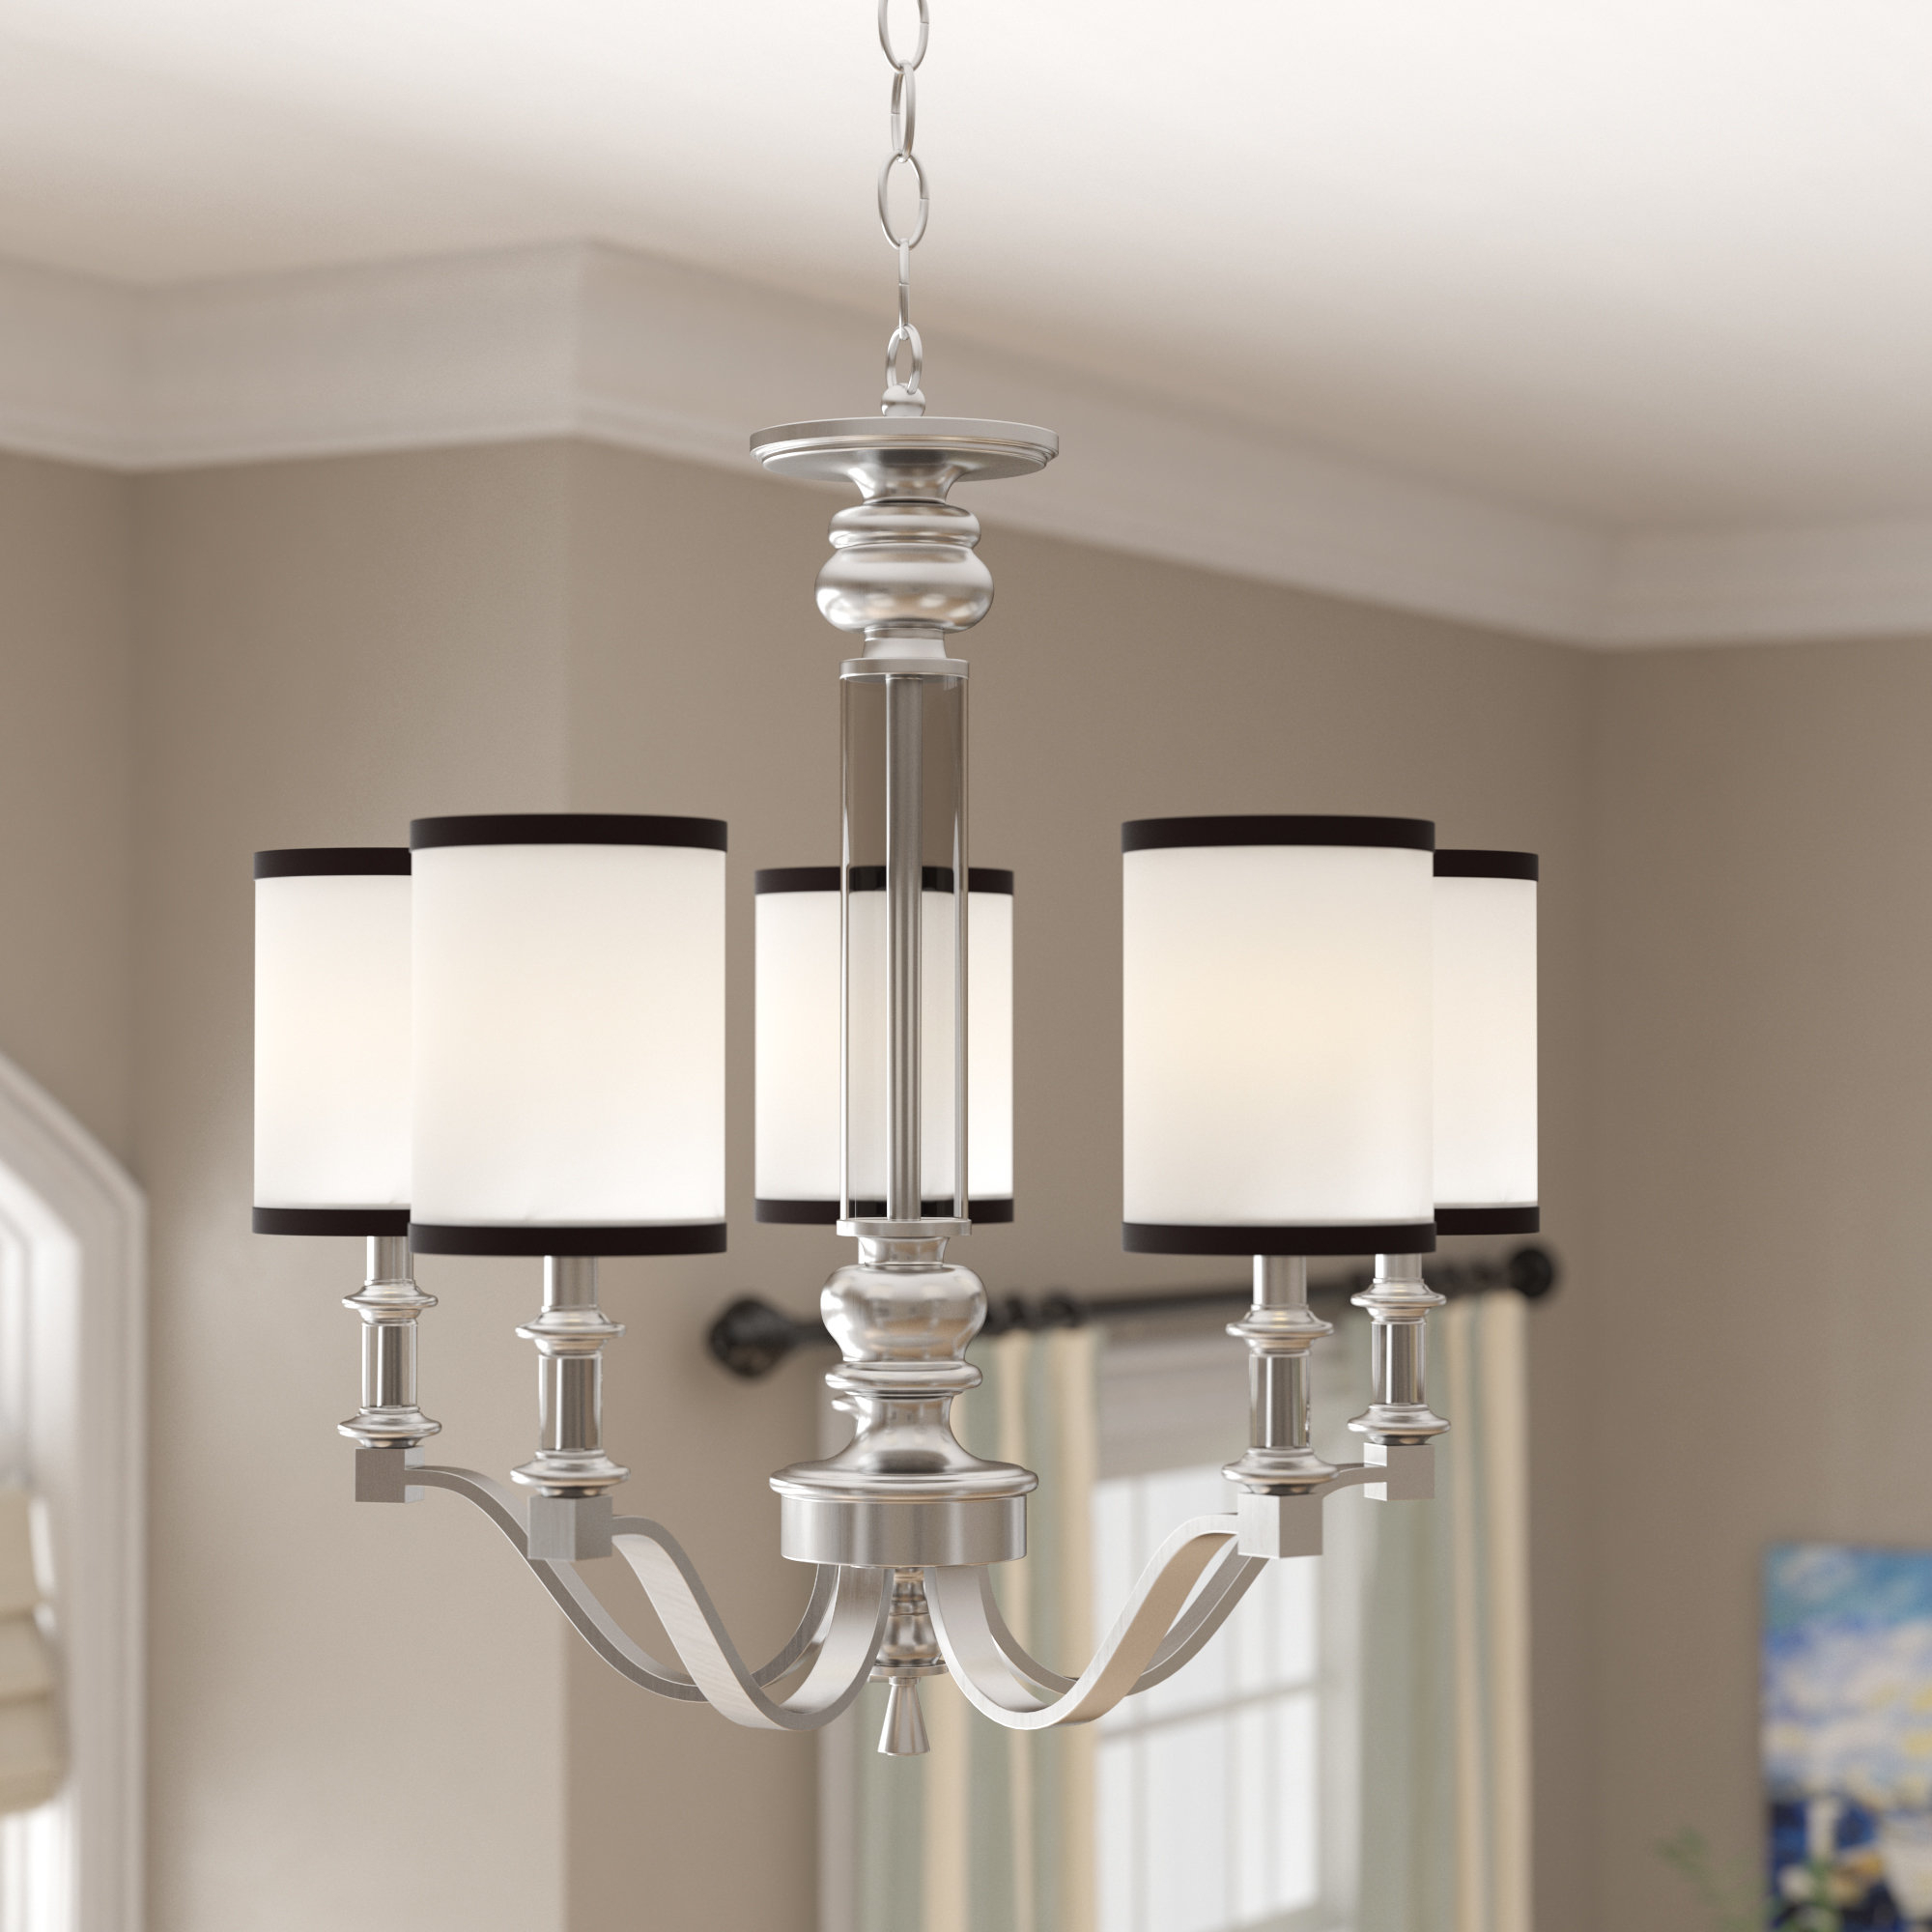 Pfeffer 5 Light Shaded Chandelier Intended For Crofoot 5 Light Shaded Chandeliers (View 5 of 30)